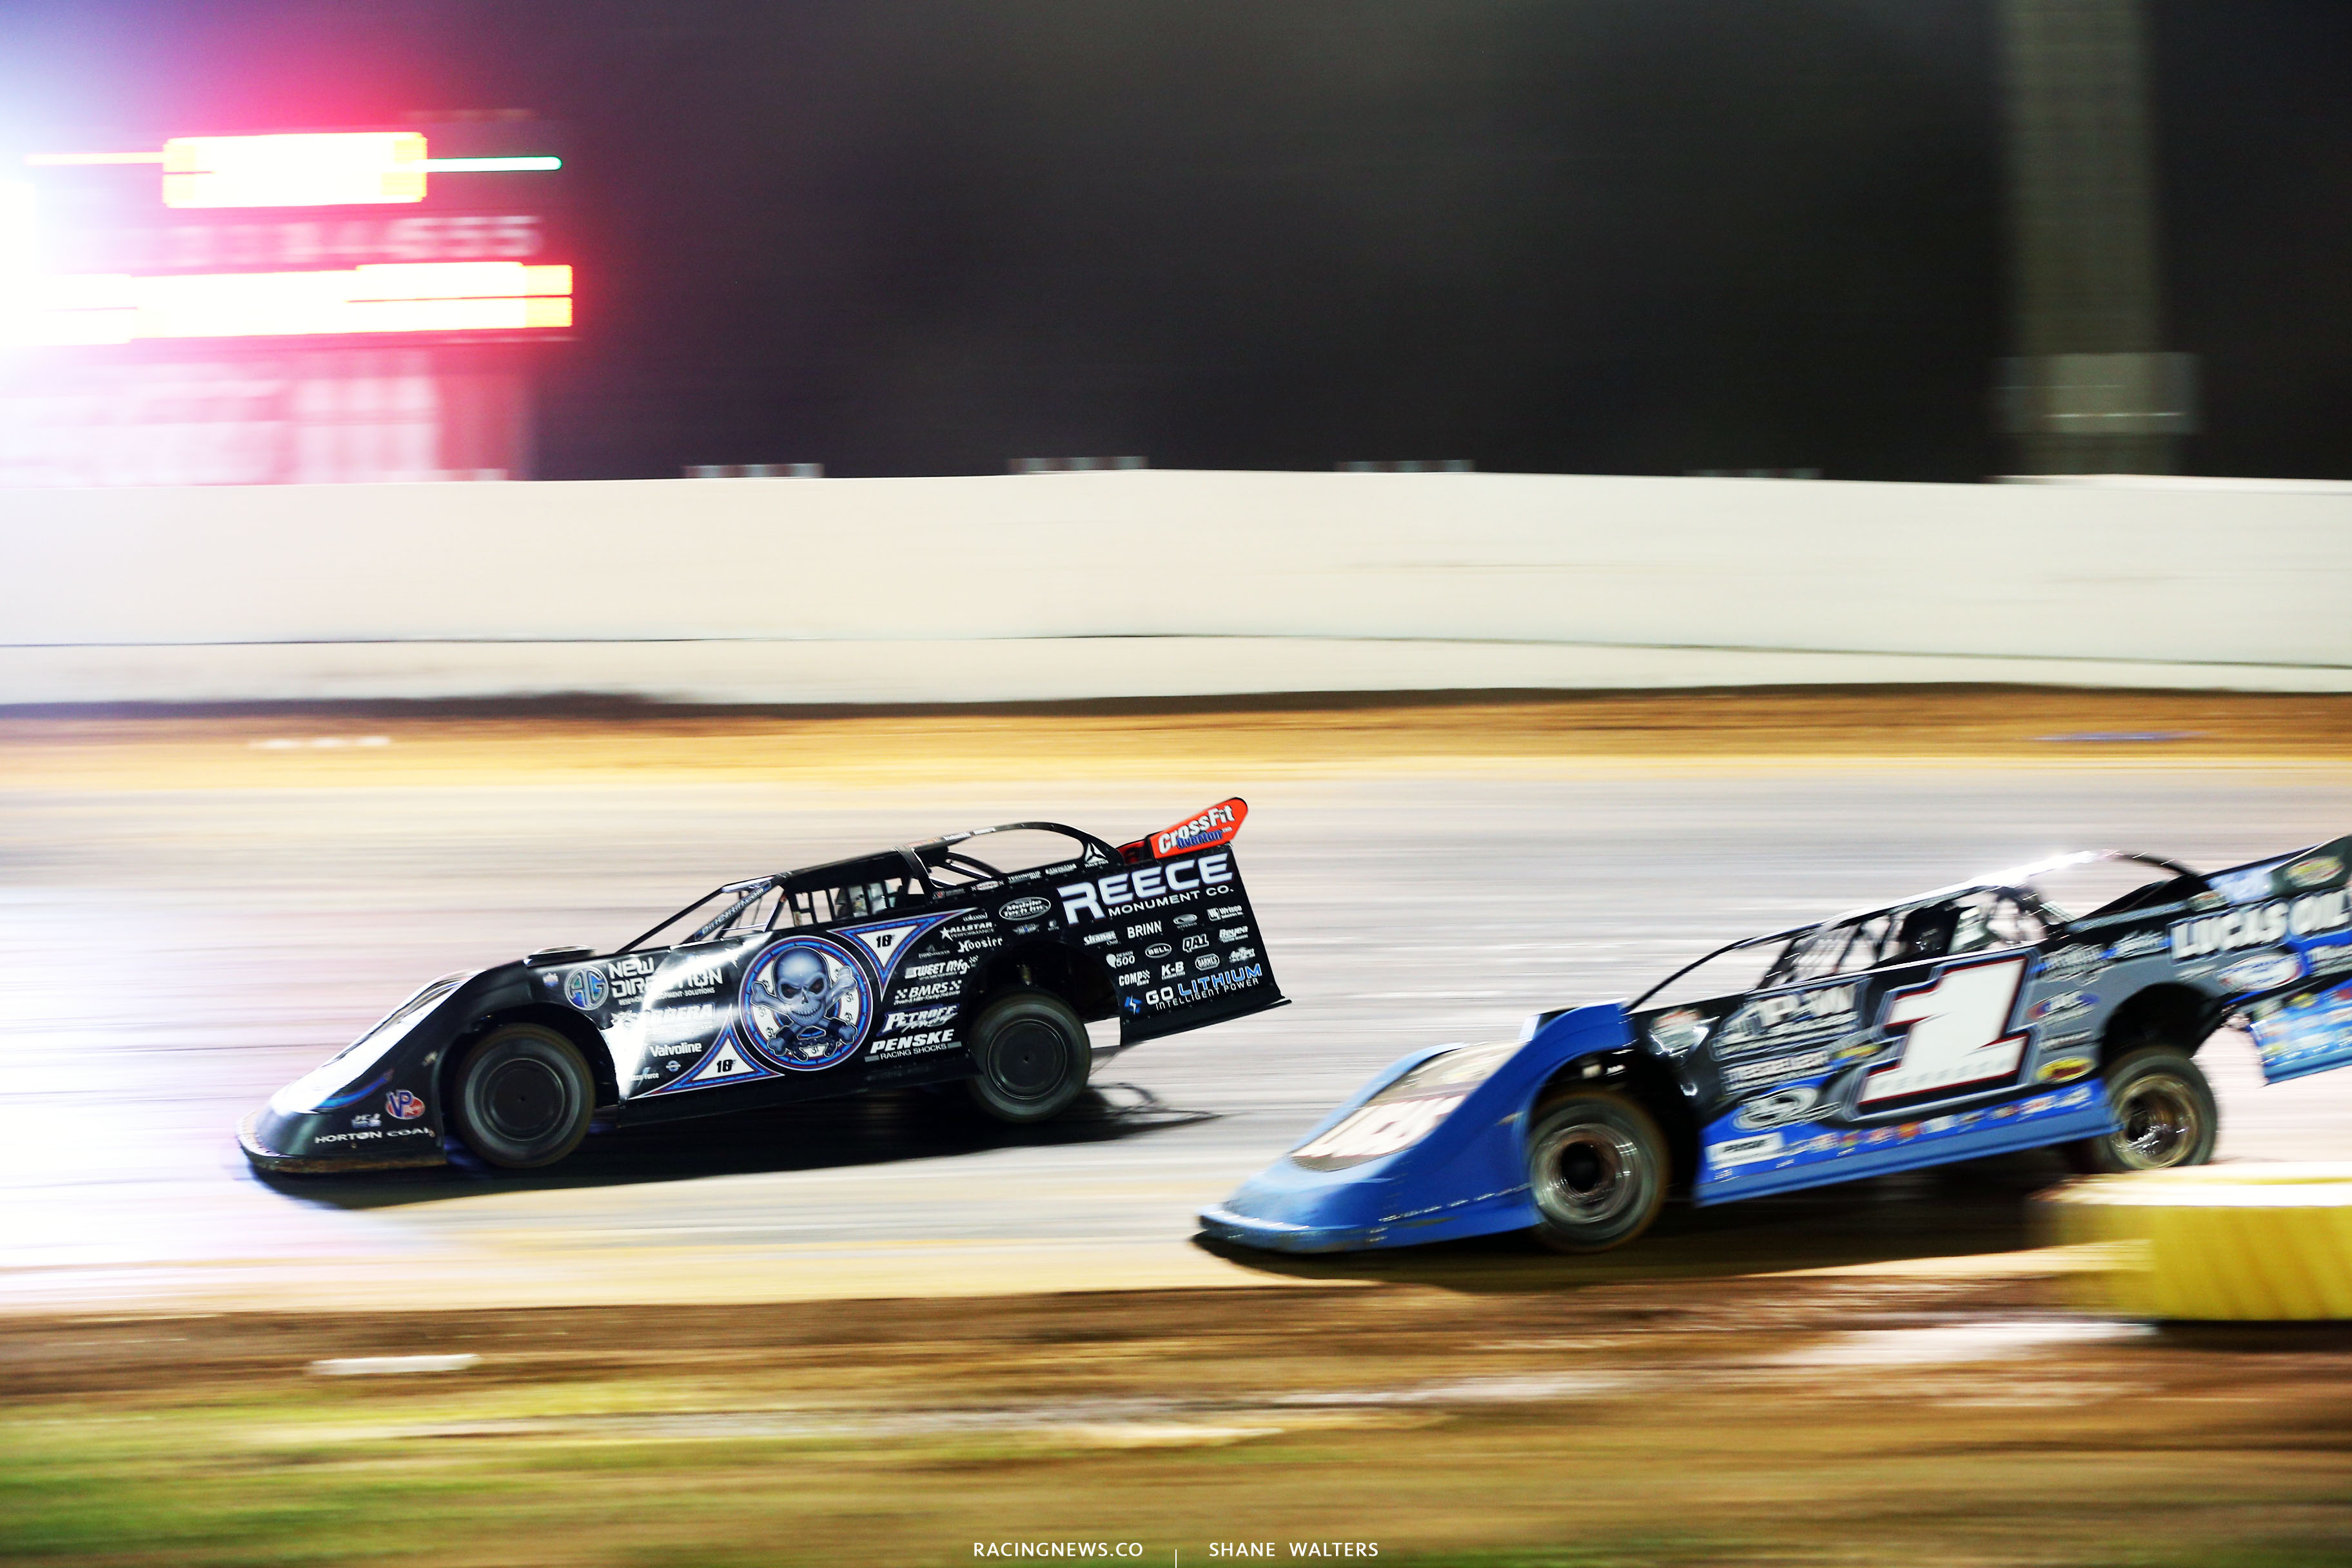 Scott Bloomquist and Earl Pearson Jr at Boyd's Speedway on the final lap 1546